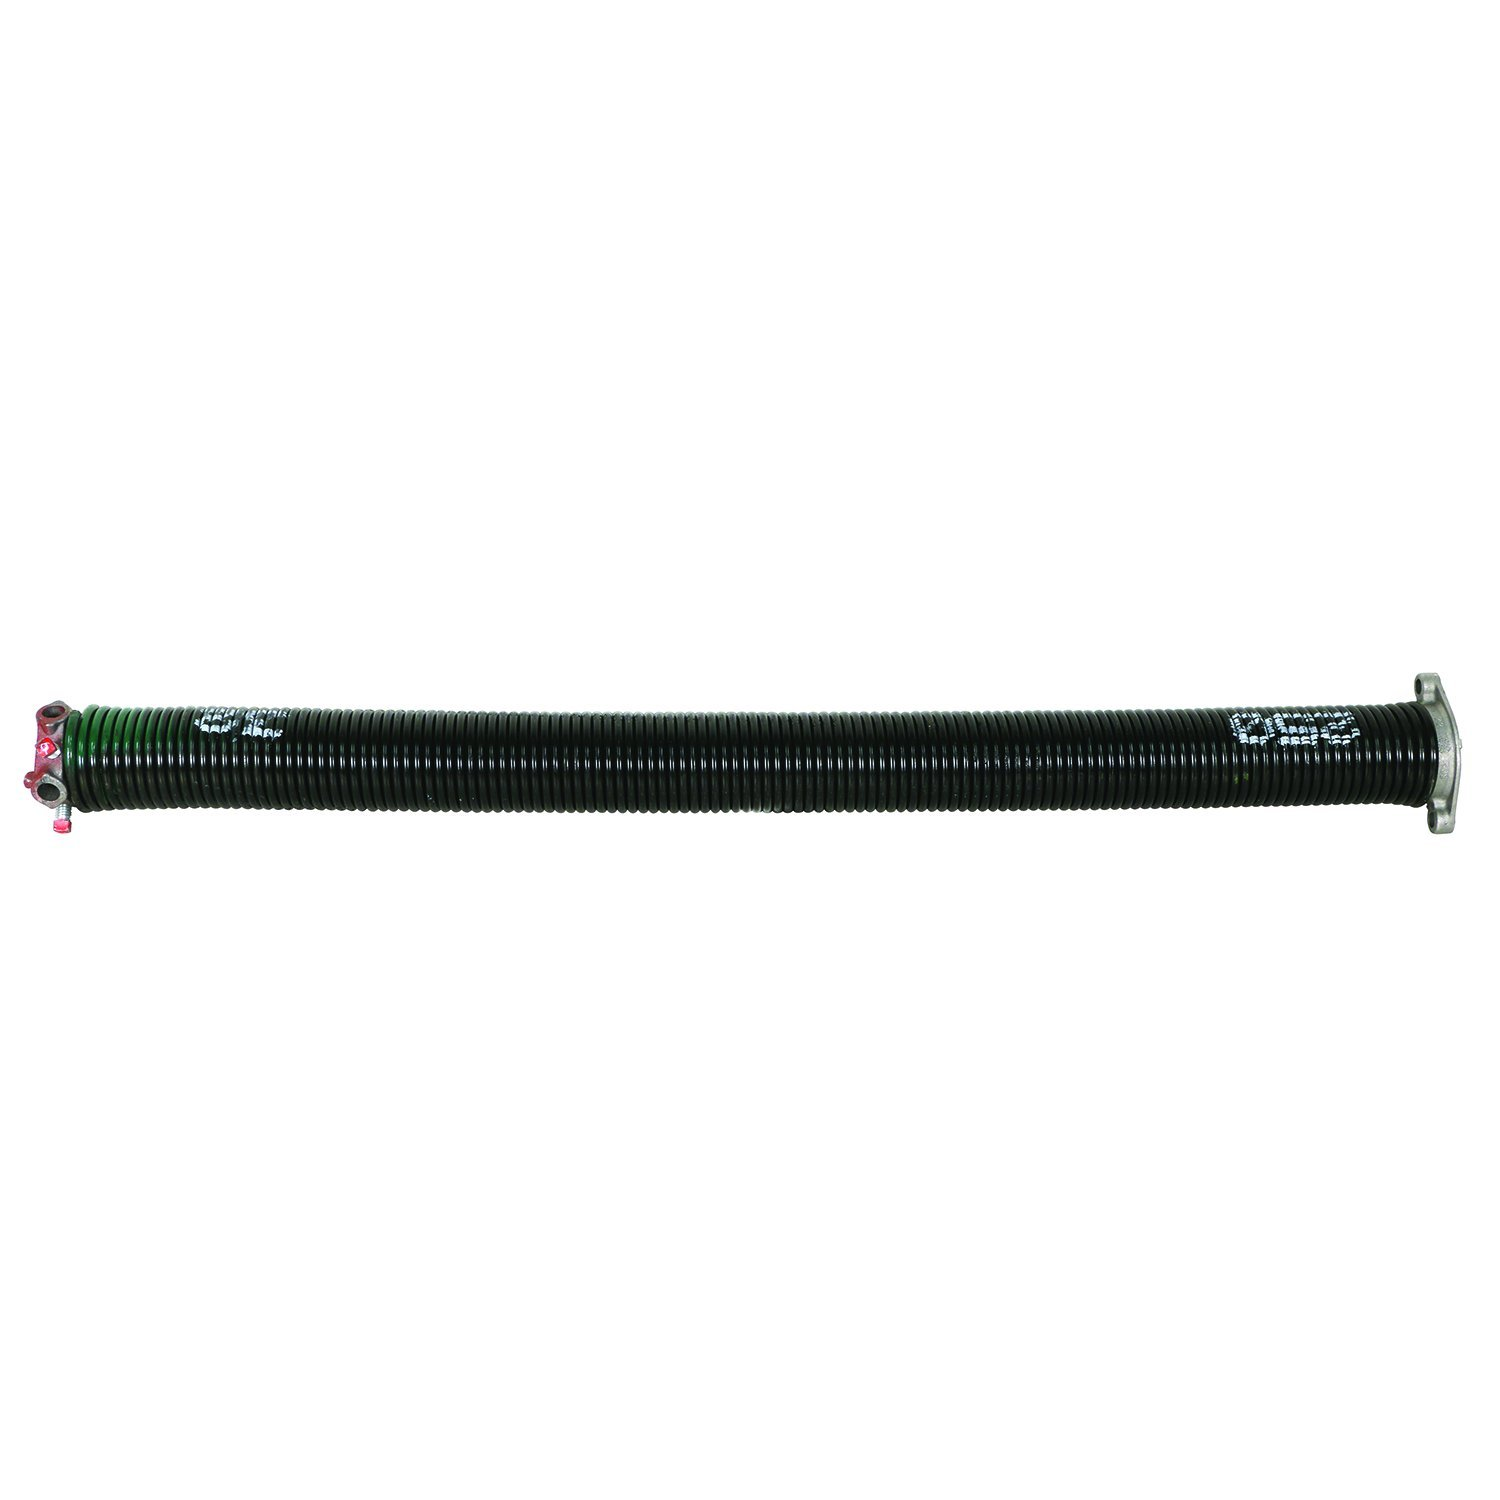 Prime-Line Products GD 12234 Garage Door Torsion Spring.250 in. x 2 in. x 32 in, Green, Right Hand Wind